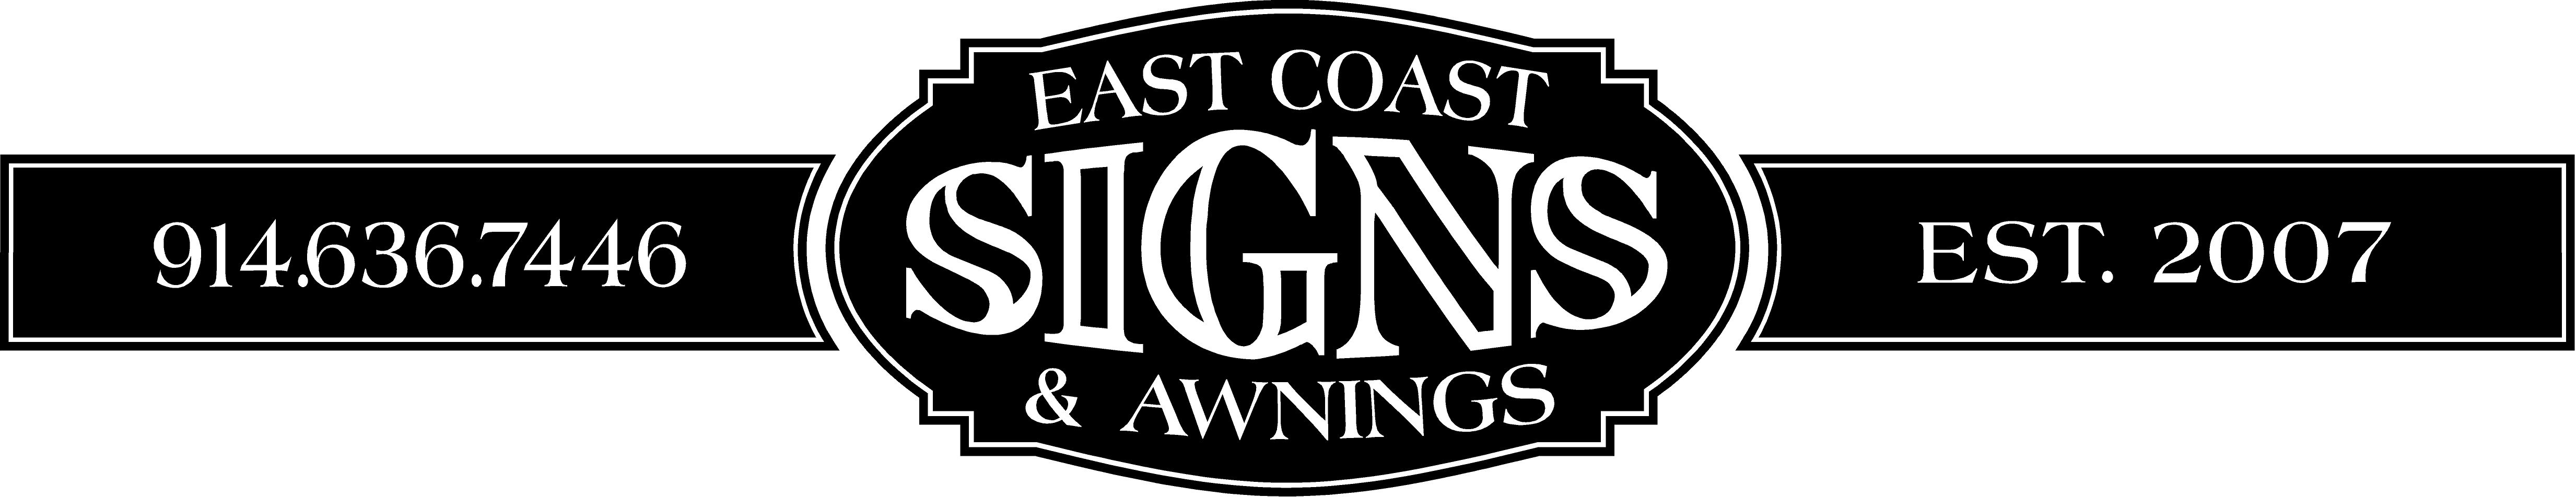 East Coast Signs And Awnings